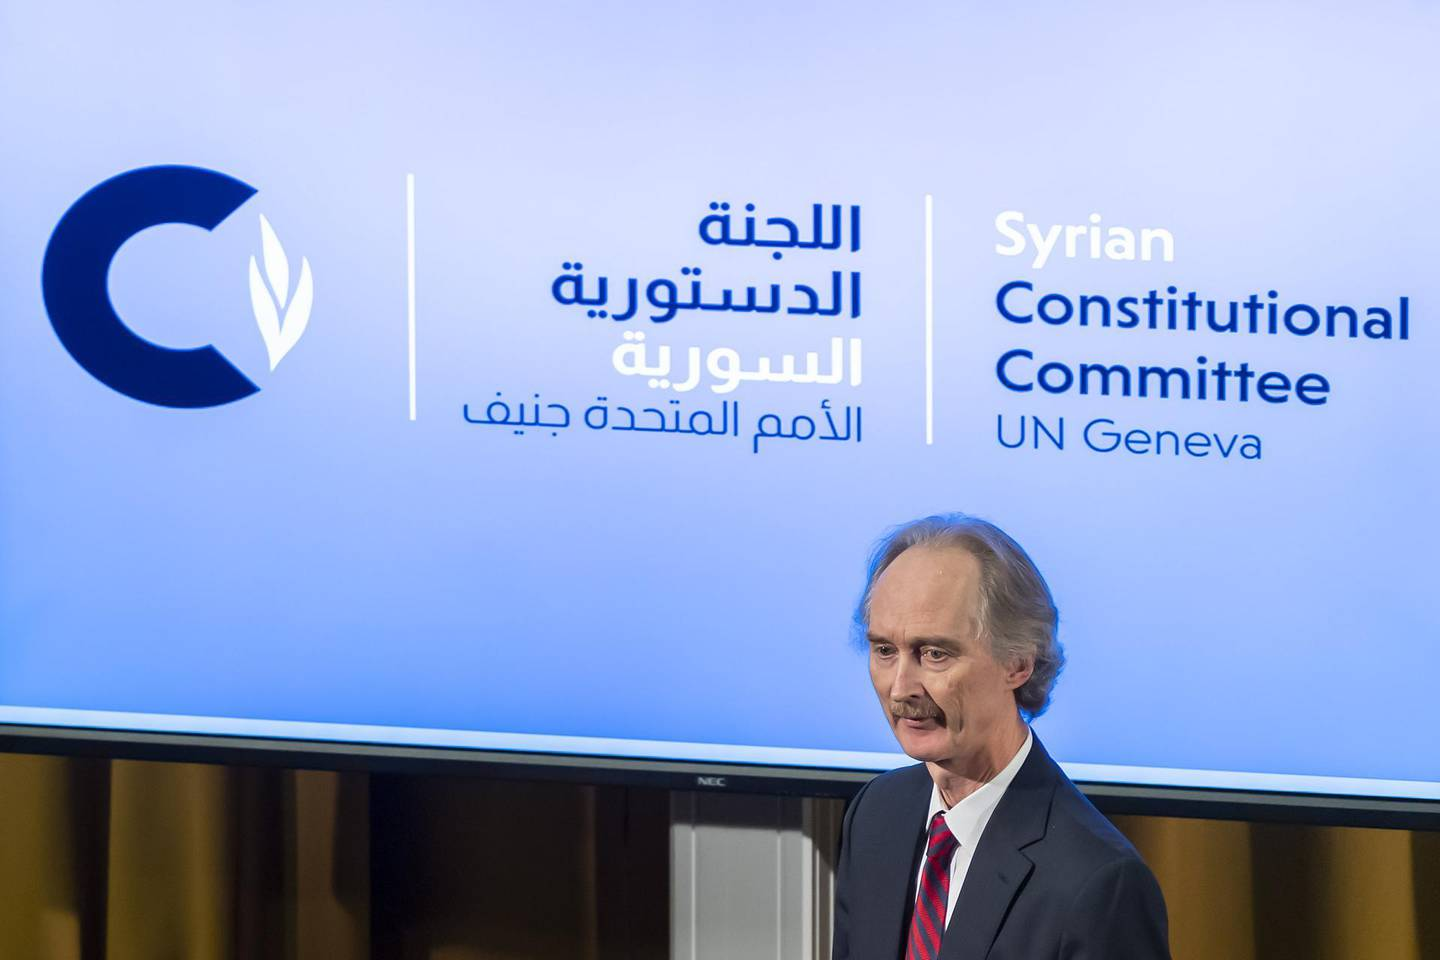 epa07959638 Geir O. Pedersen (R), Special Envoy for Syria, leaves the poduim after the first meeting of the Syrian Constitutional Committee, at the European headquarters of the United Nations in Geneva, Switzerland, 30 October 2019.  EPA/MARTIAL TREZZINI